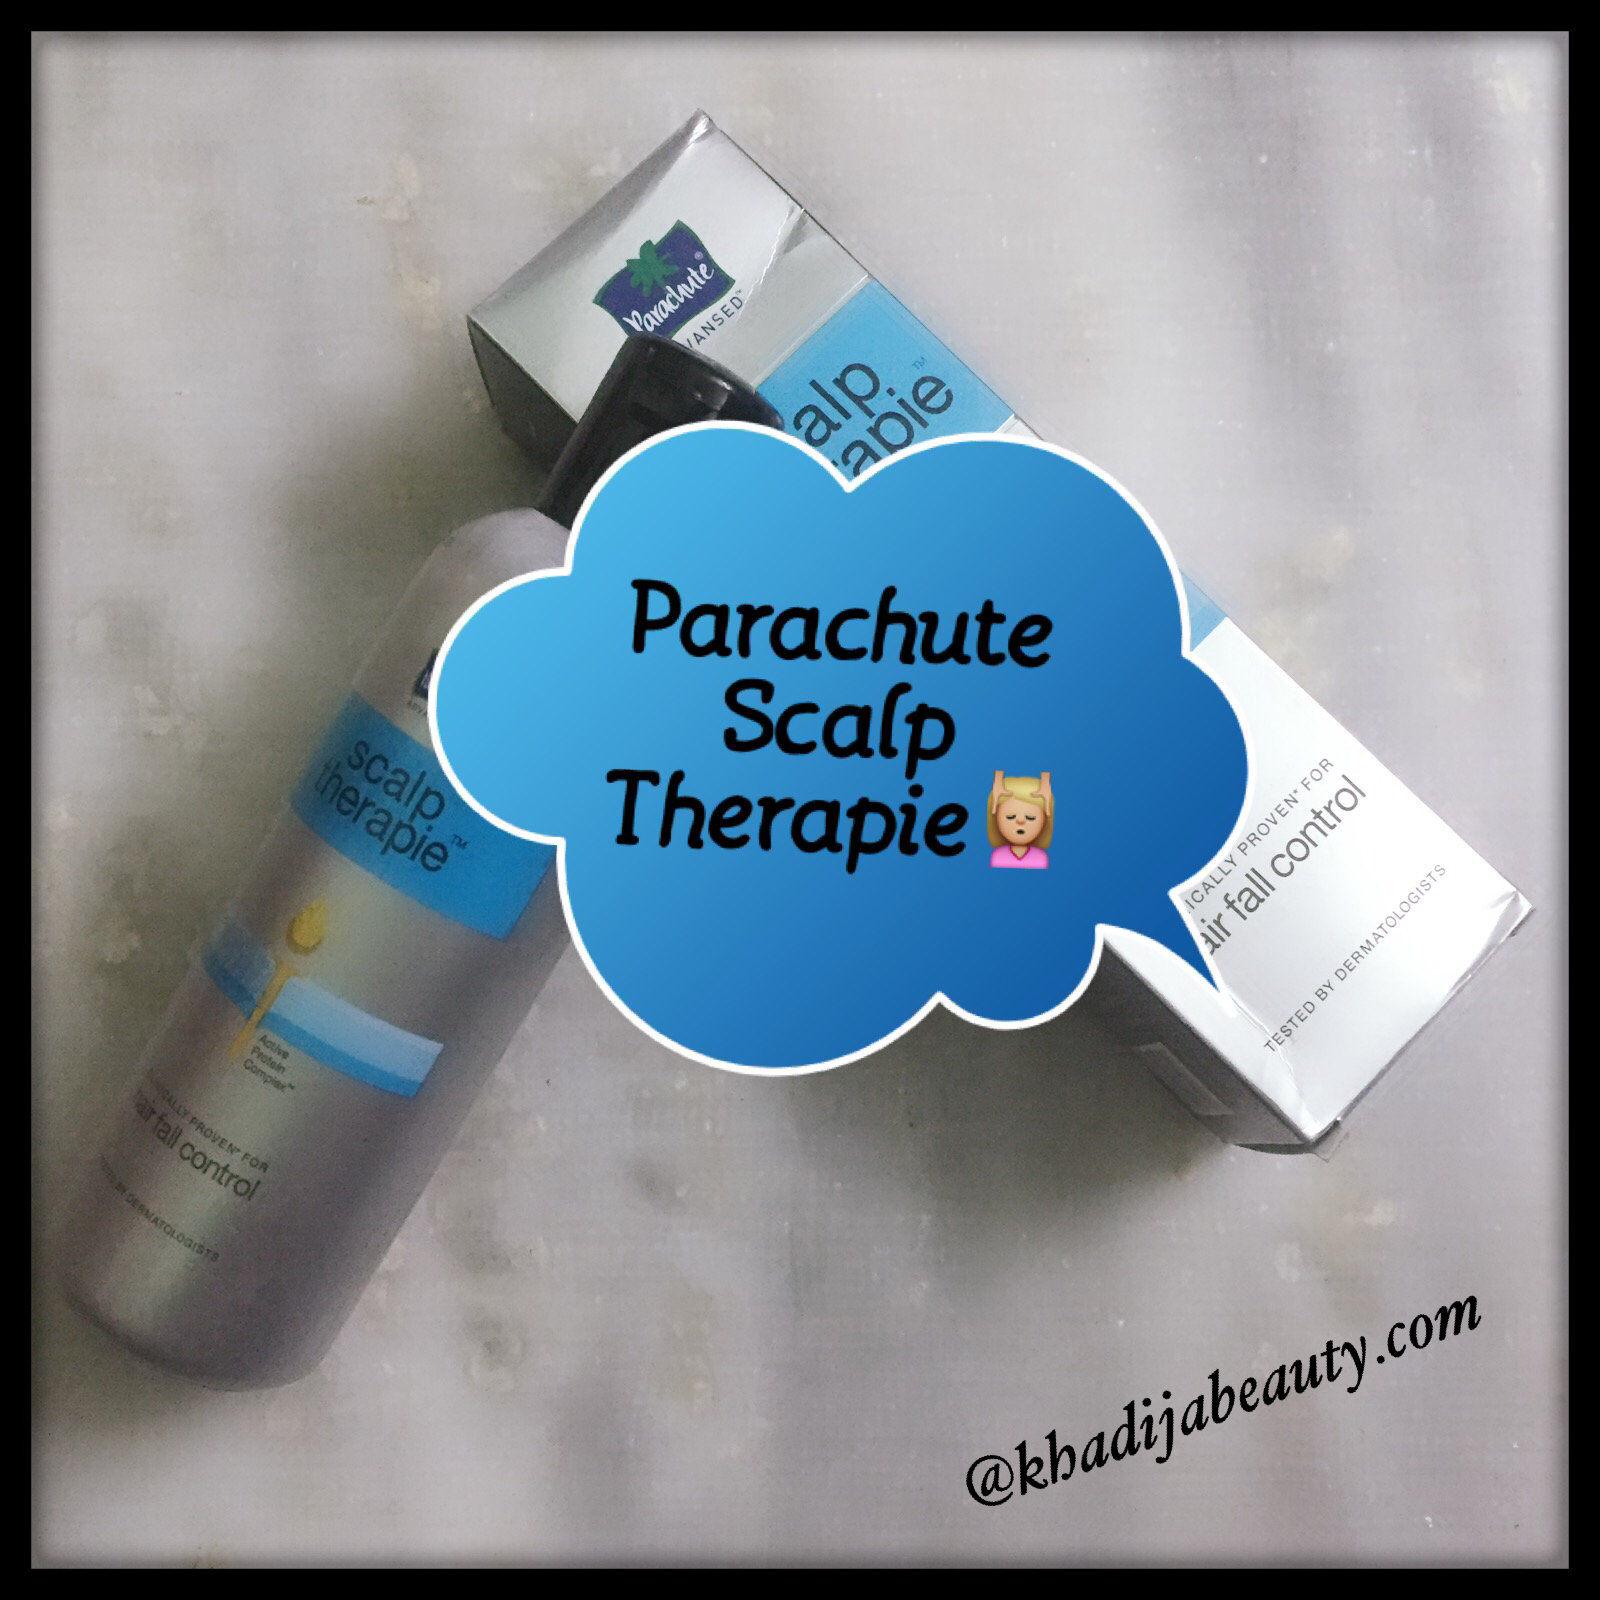 PARACHUTE SCALP THERAPIE REVIEW-ULTIMATE HAIR FALL SOLUTION